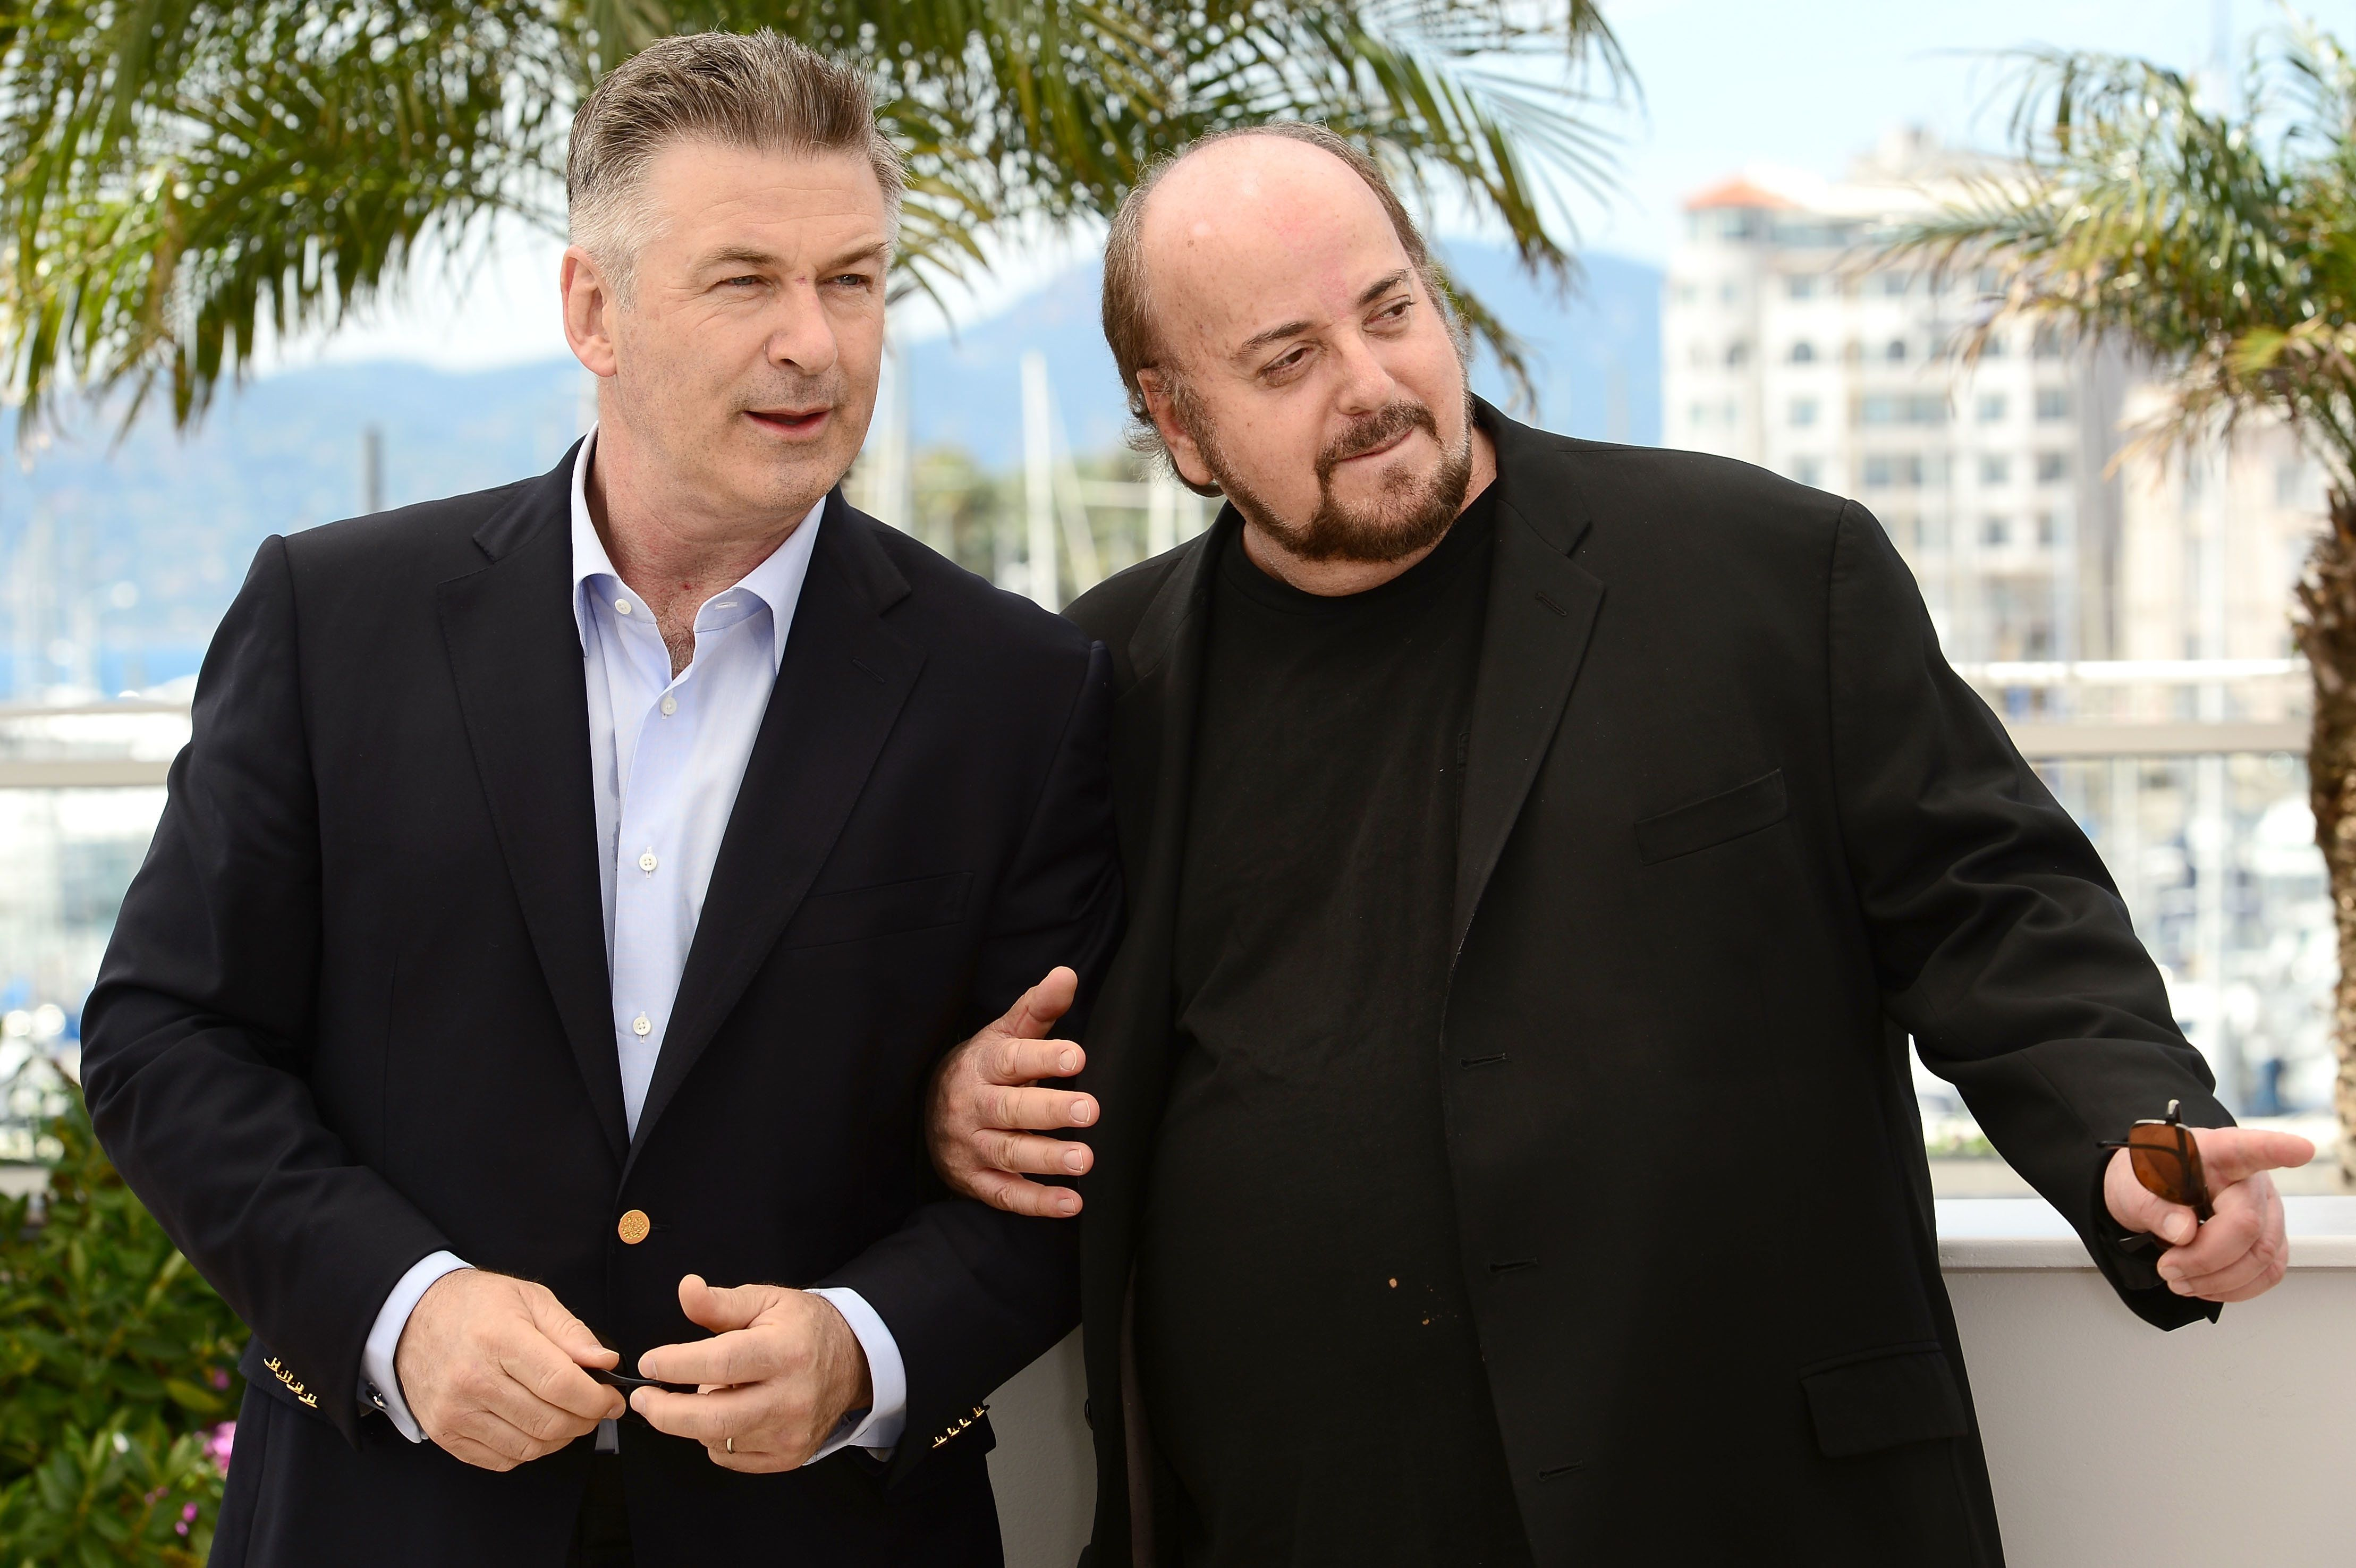 CANNES, FRANCE - MAY 21:  Actor Alec Baldwin and director James Toback attend the photocall for 'Seduced and Abandoned' during The 66th Annual Cannes Film Festival at Palais des Festivals on May 21, 2013 in Cannes, France.  (Photo by Dominique Charriau/WireImage)